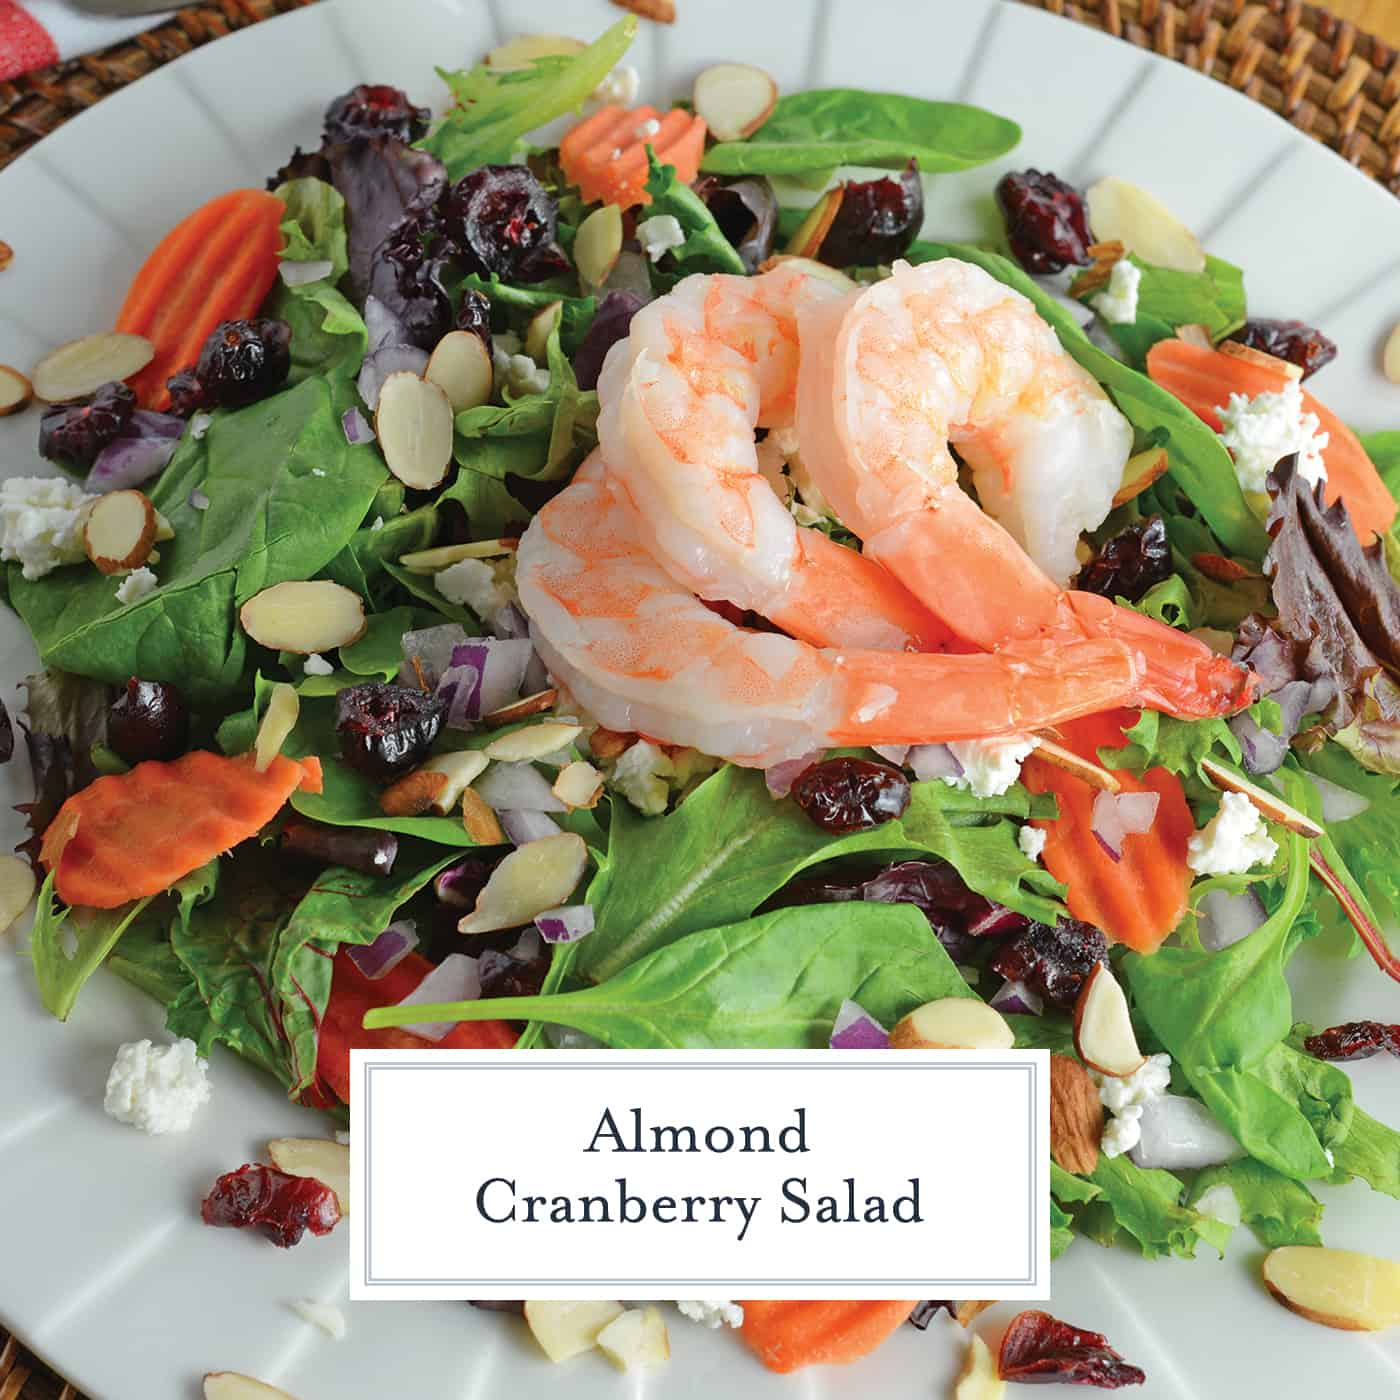 This Almond Cranberry Salad with Dijon Vinaigrette is a quick yet tasty meal solution! Throw it together for a healthy quick dinner or lunch! #summersalads #cranberrysalad #easysaladrecipes www.savoryexperiments.com